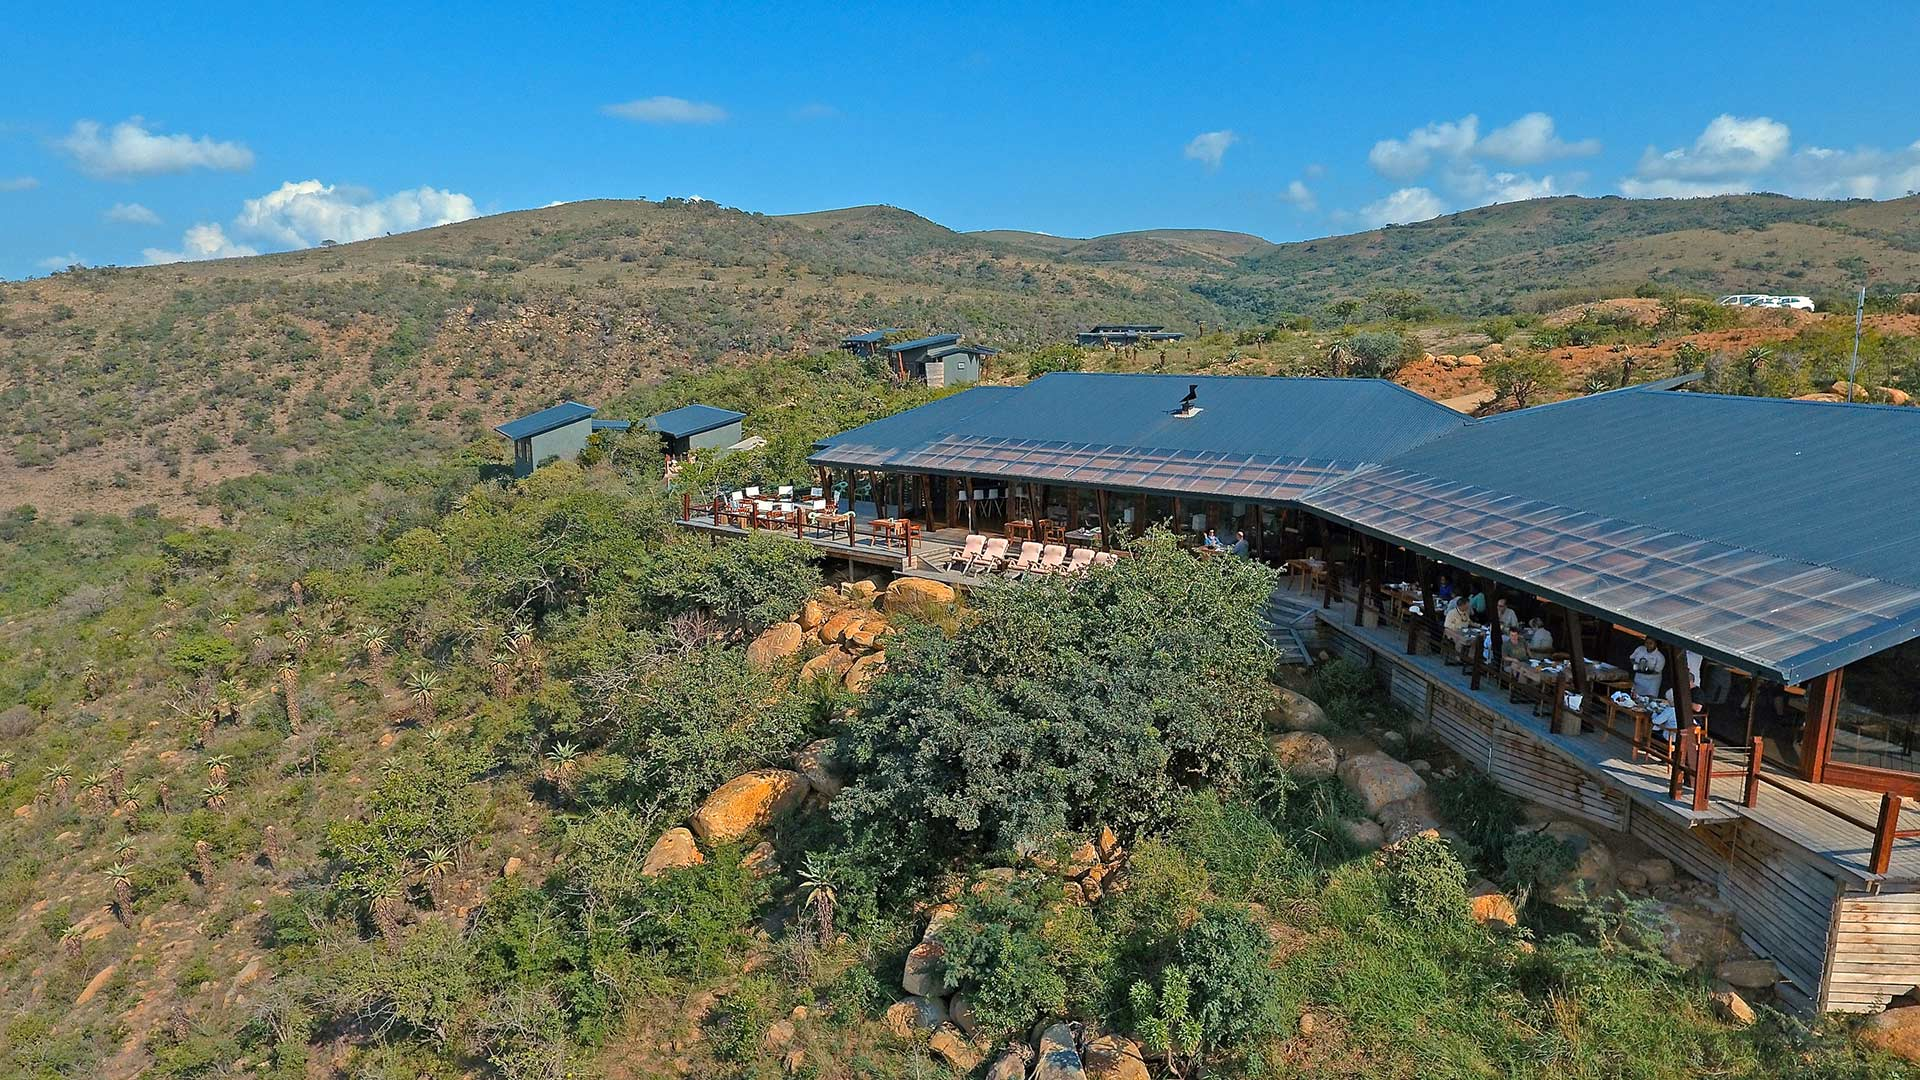 Rhino Ridge Safari Lodge Projects